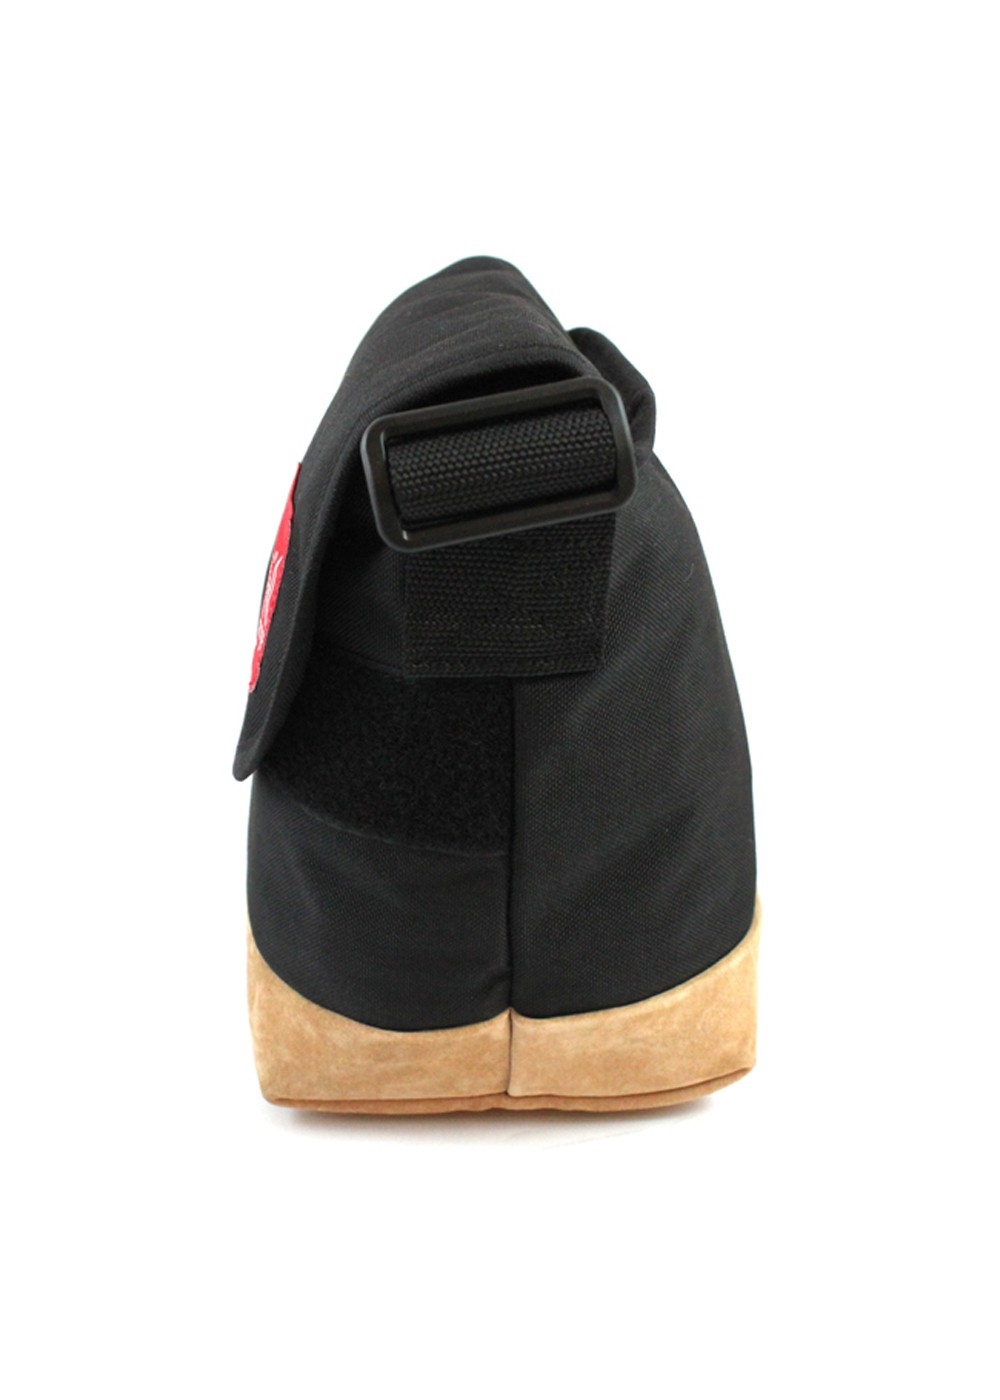 Suede Fabric Casual Messenger|ブラック|メッセンジャーバッグ|Manhattan Portage